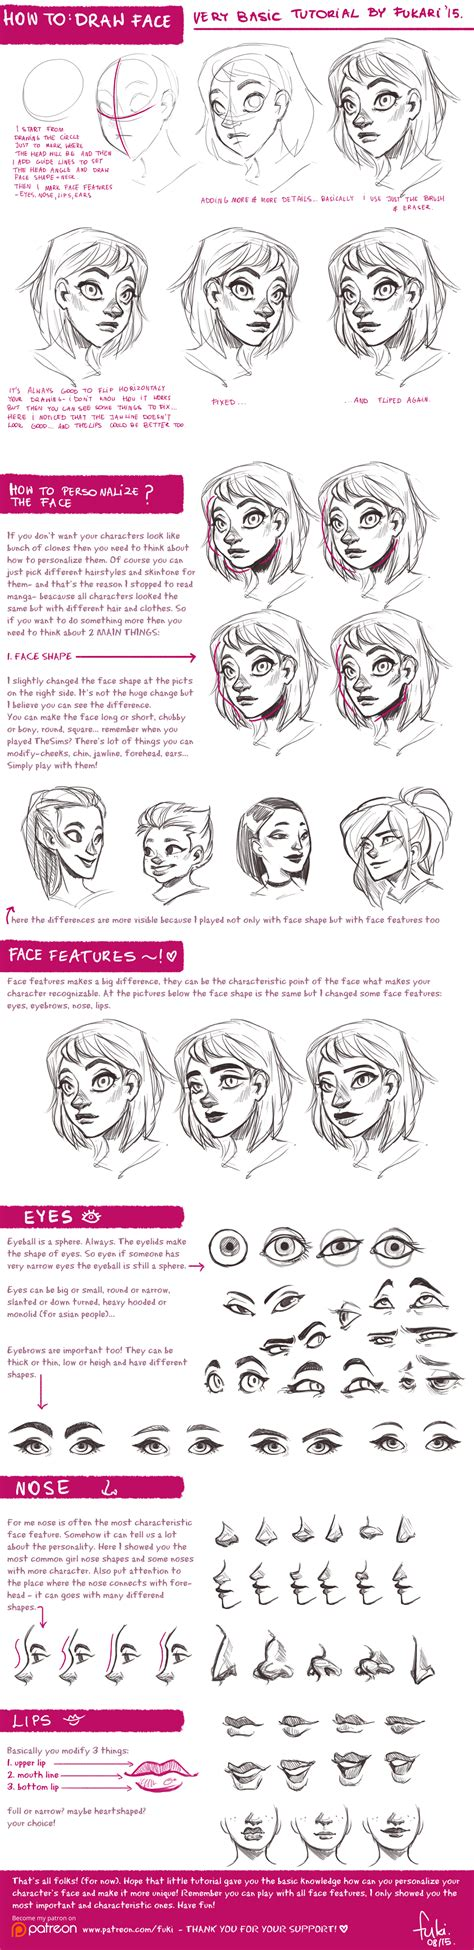 www tutorial face tutorial by fukari on deviantart